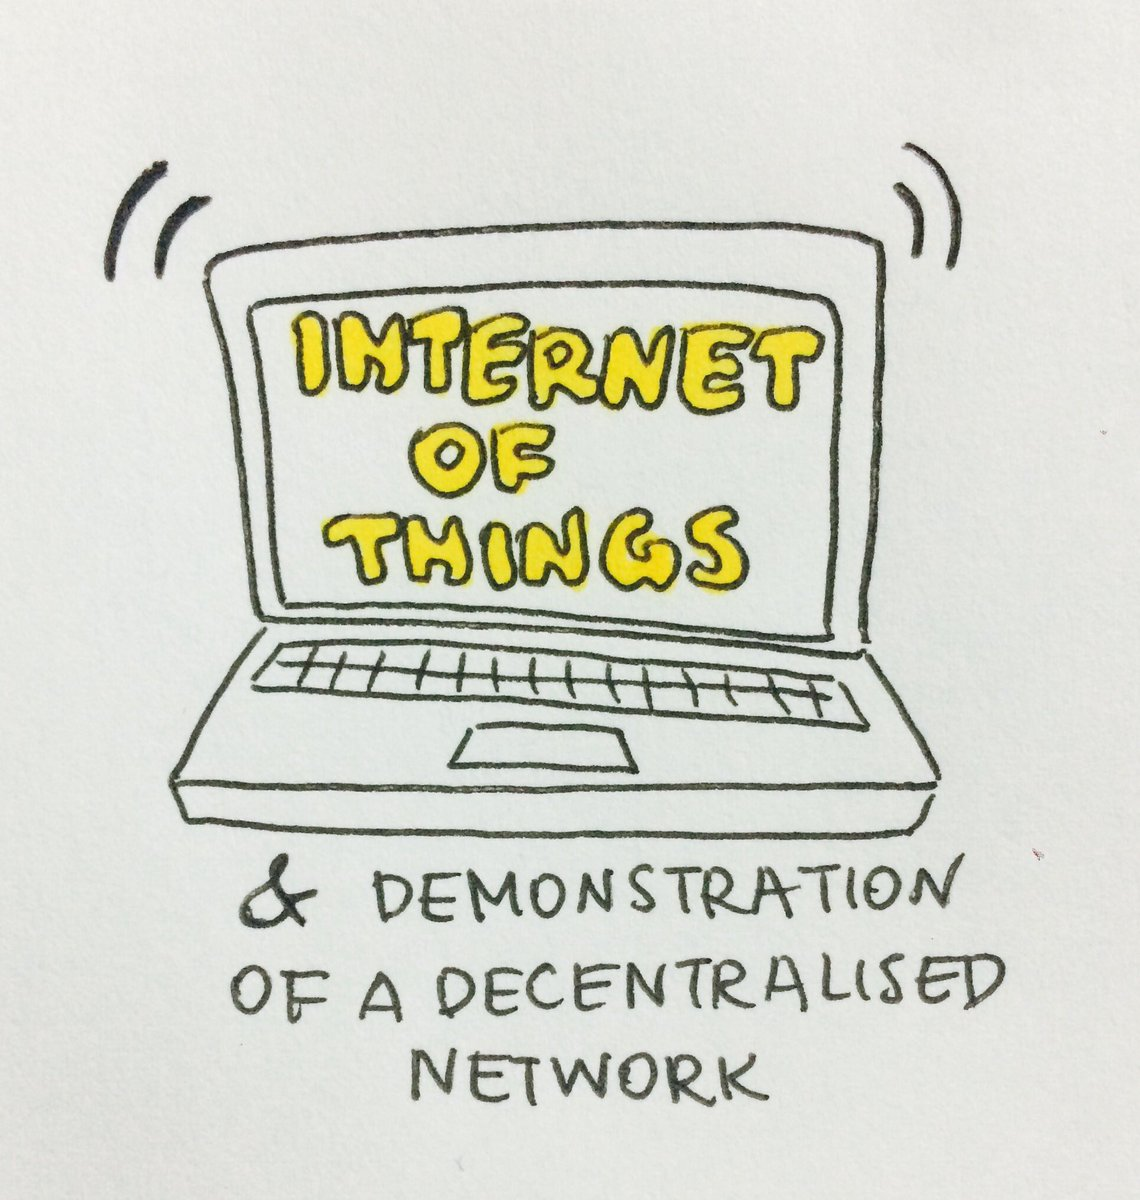 Come join us for #internetofthings workshop! #OSFEST16 #OSFvisual https://t.co/8rB9DmTAgk